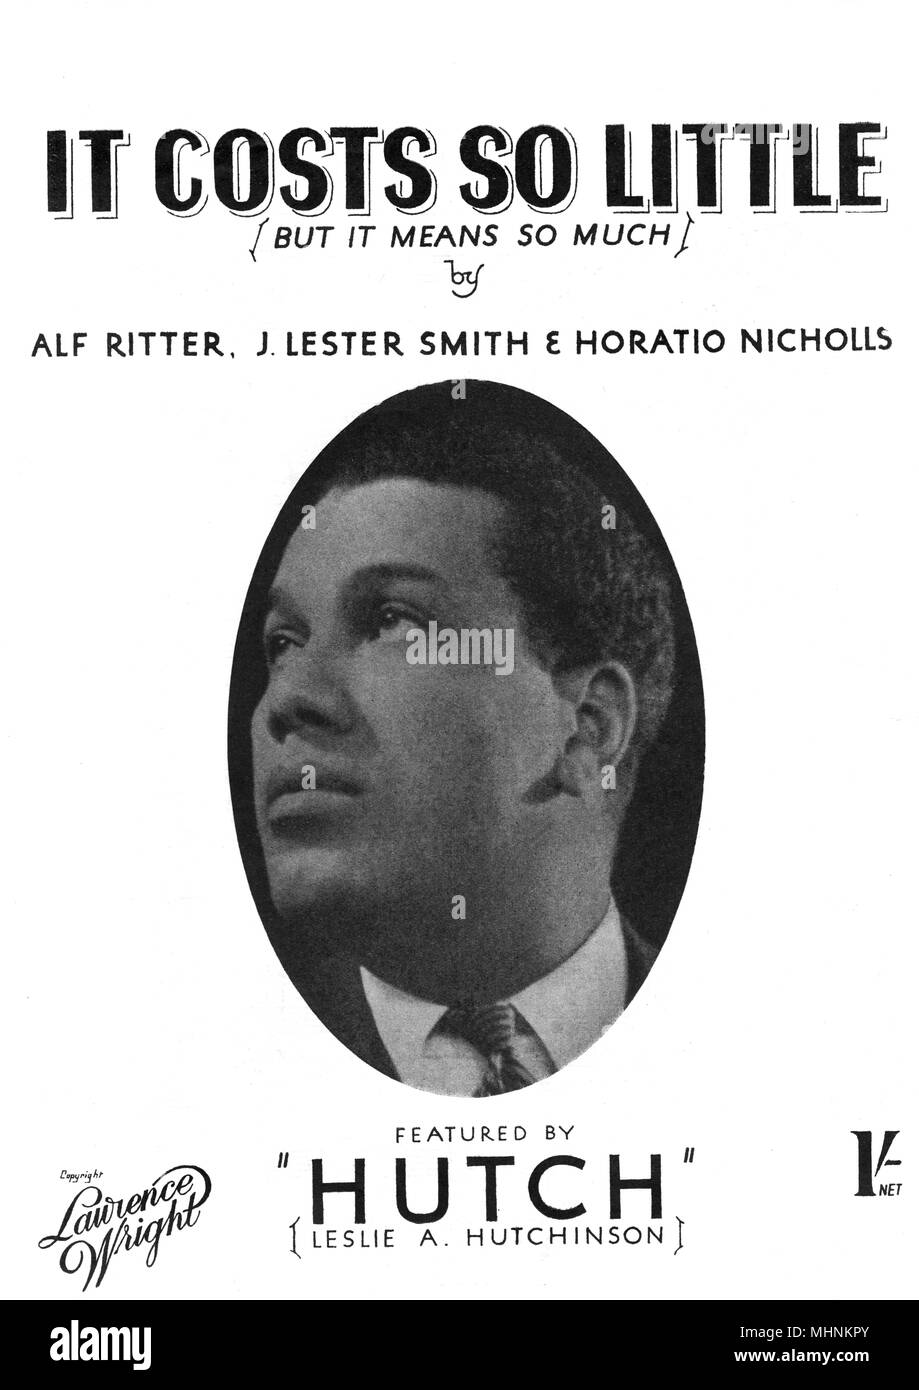 'It costs so little but it means so much' by Alf Ritter, J. Lester Smith and Horatio Nicholls featured by Leslie A. Hutchinson ('Hutch') - Music Sheet Cover.     Date: circa 1942 - Stock Image